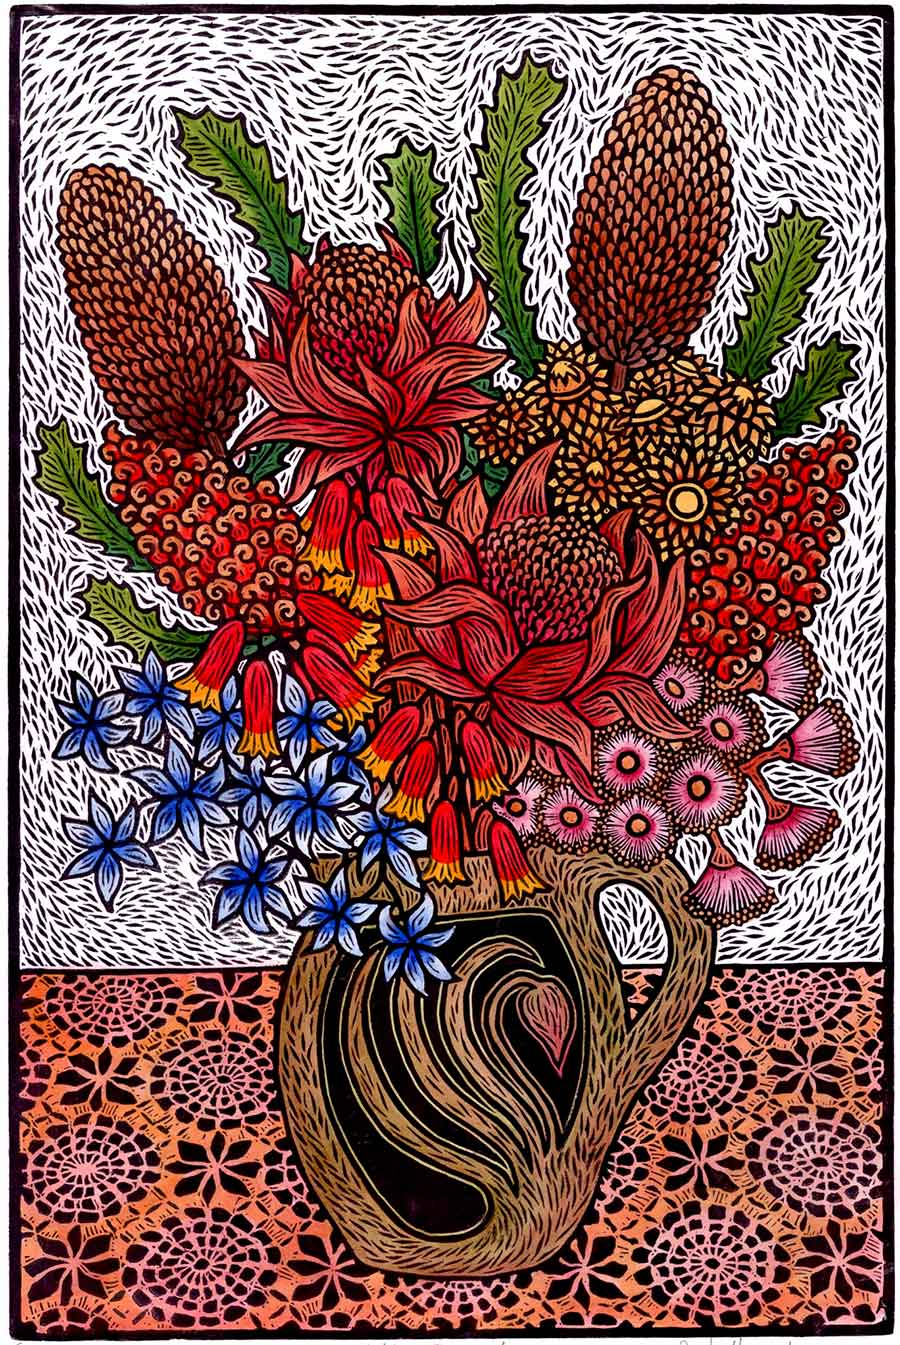 Julie Hanrahan - Native Bouquet